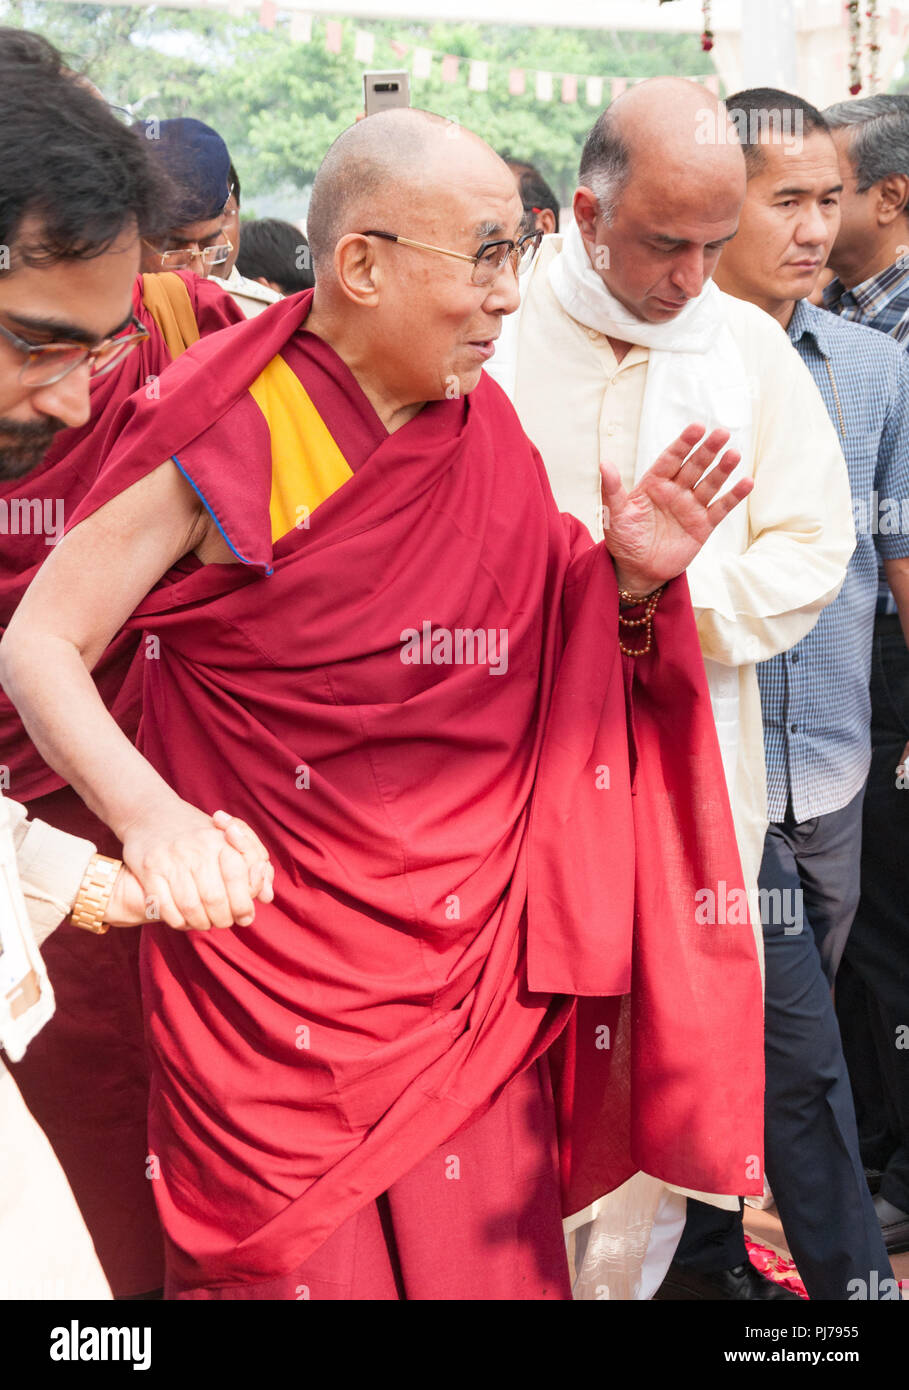 MUMBAI, INDIA – December 10 2017: His Holiness the 14th Dalai Lama waves to people as he is escorted by volunteers at a spiritual lecture event at Som - Stock Image